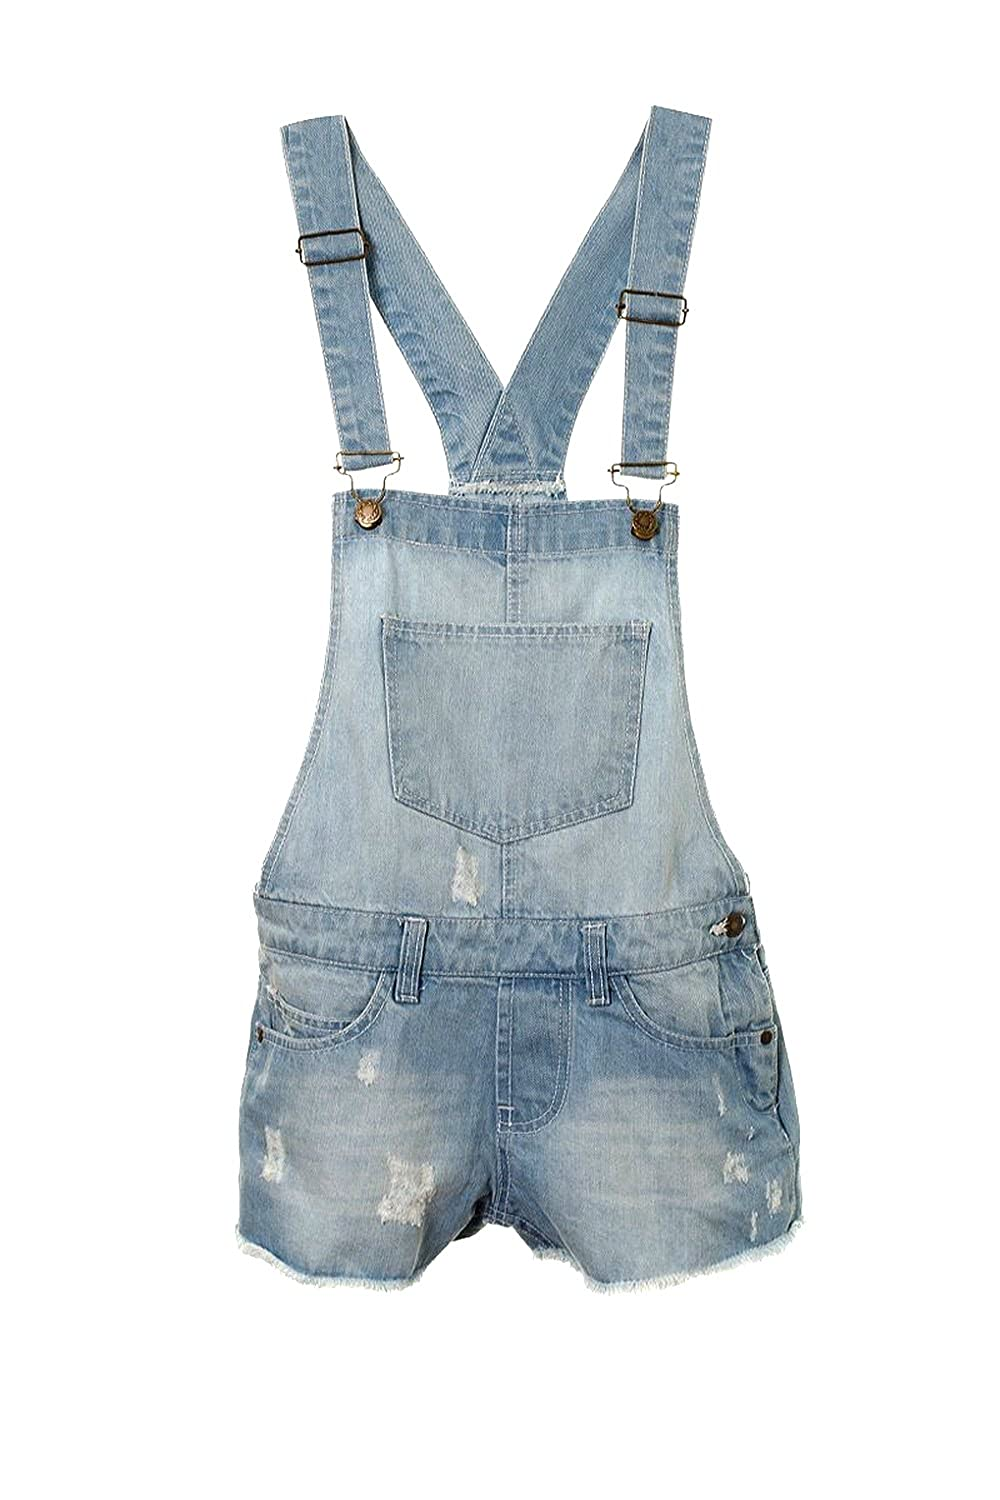 NEW GIRLS KIDS DENIM DUNGAREE OUTFIT SHORTS DRESS JUMPSUIT PARTY SIZE 7-14 YEARS AEL